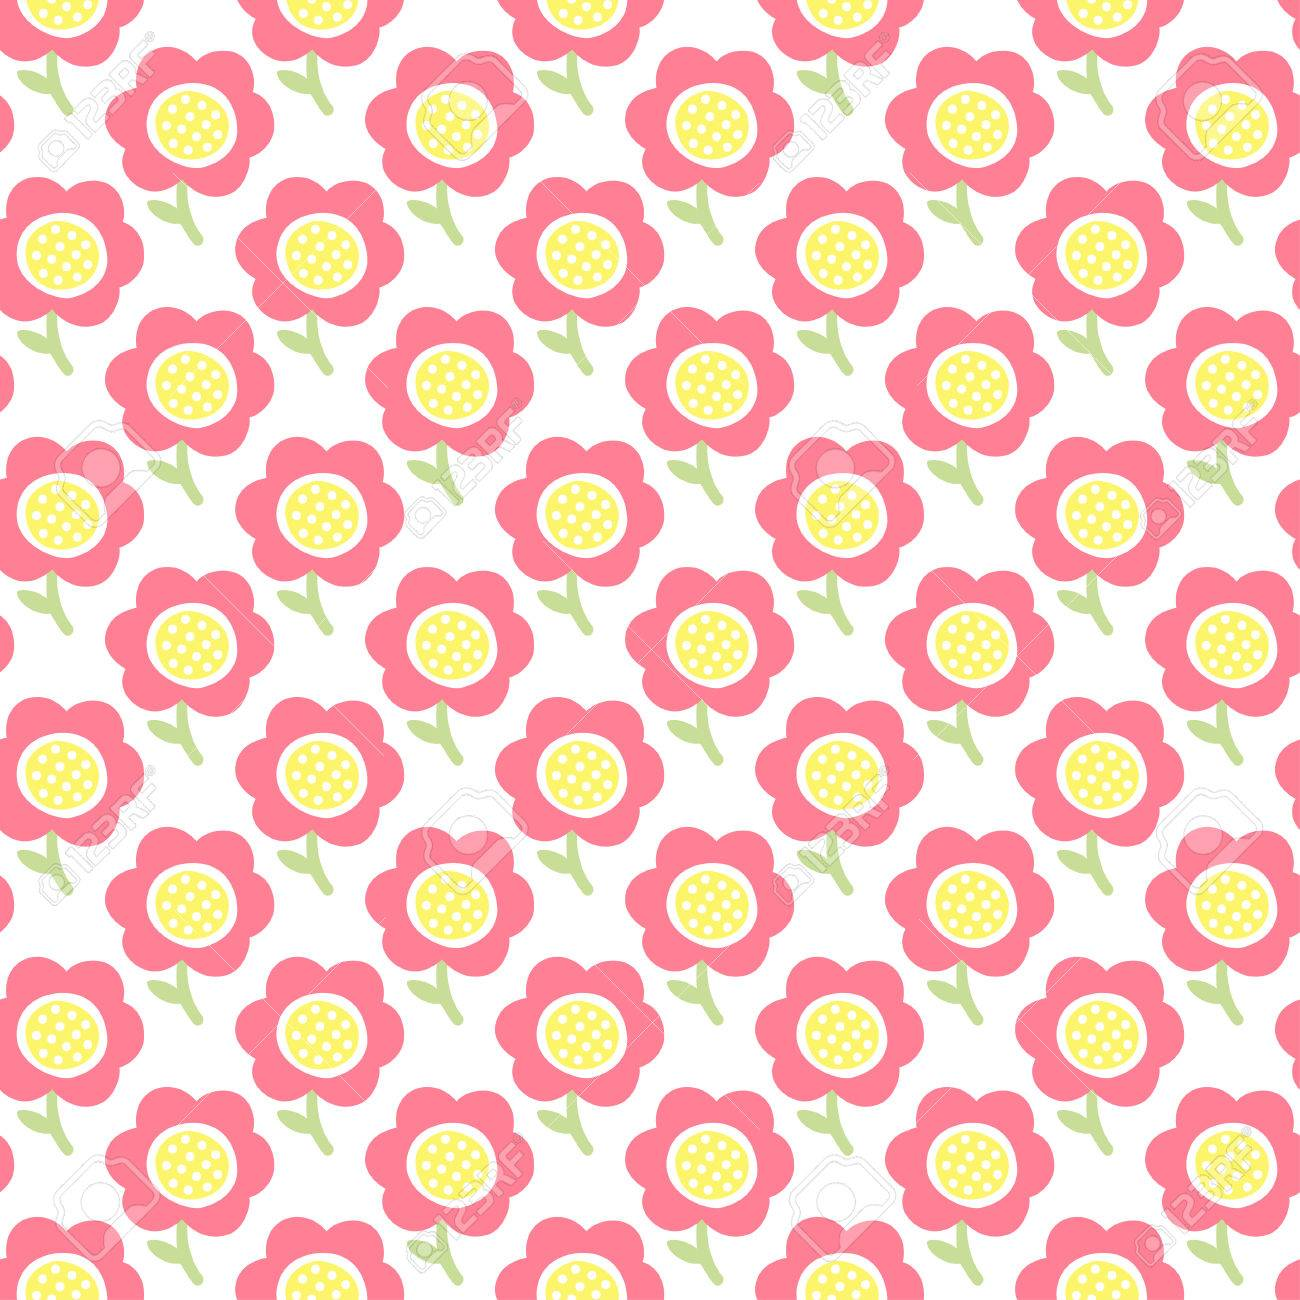 Simple Baby Pattern Cute Seamless Wallpaper Doodle Little Flower Pastel Background Vector Illustration